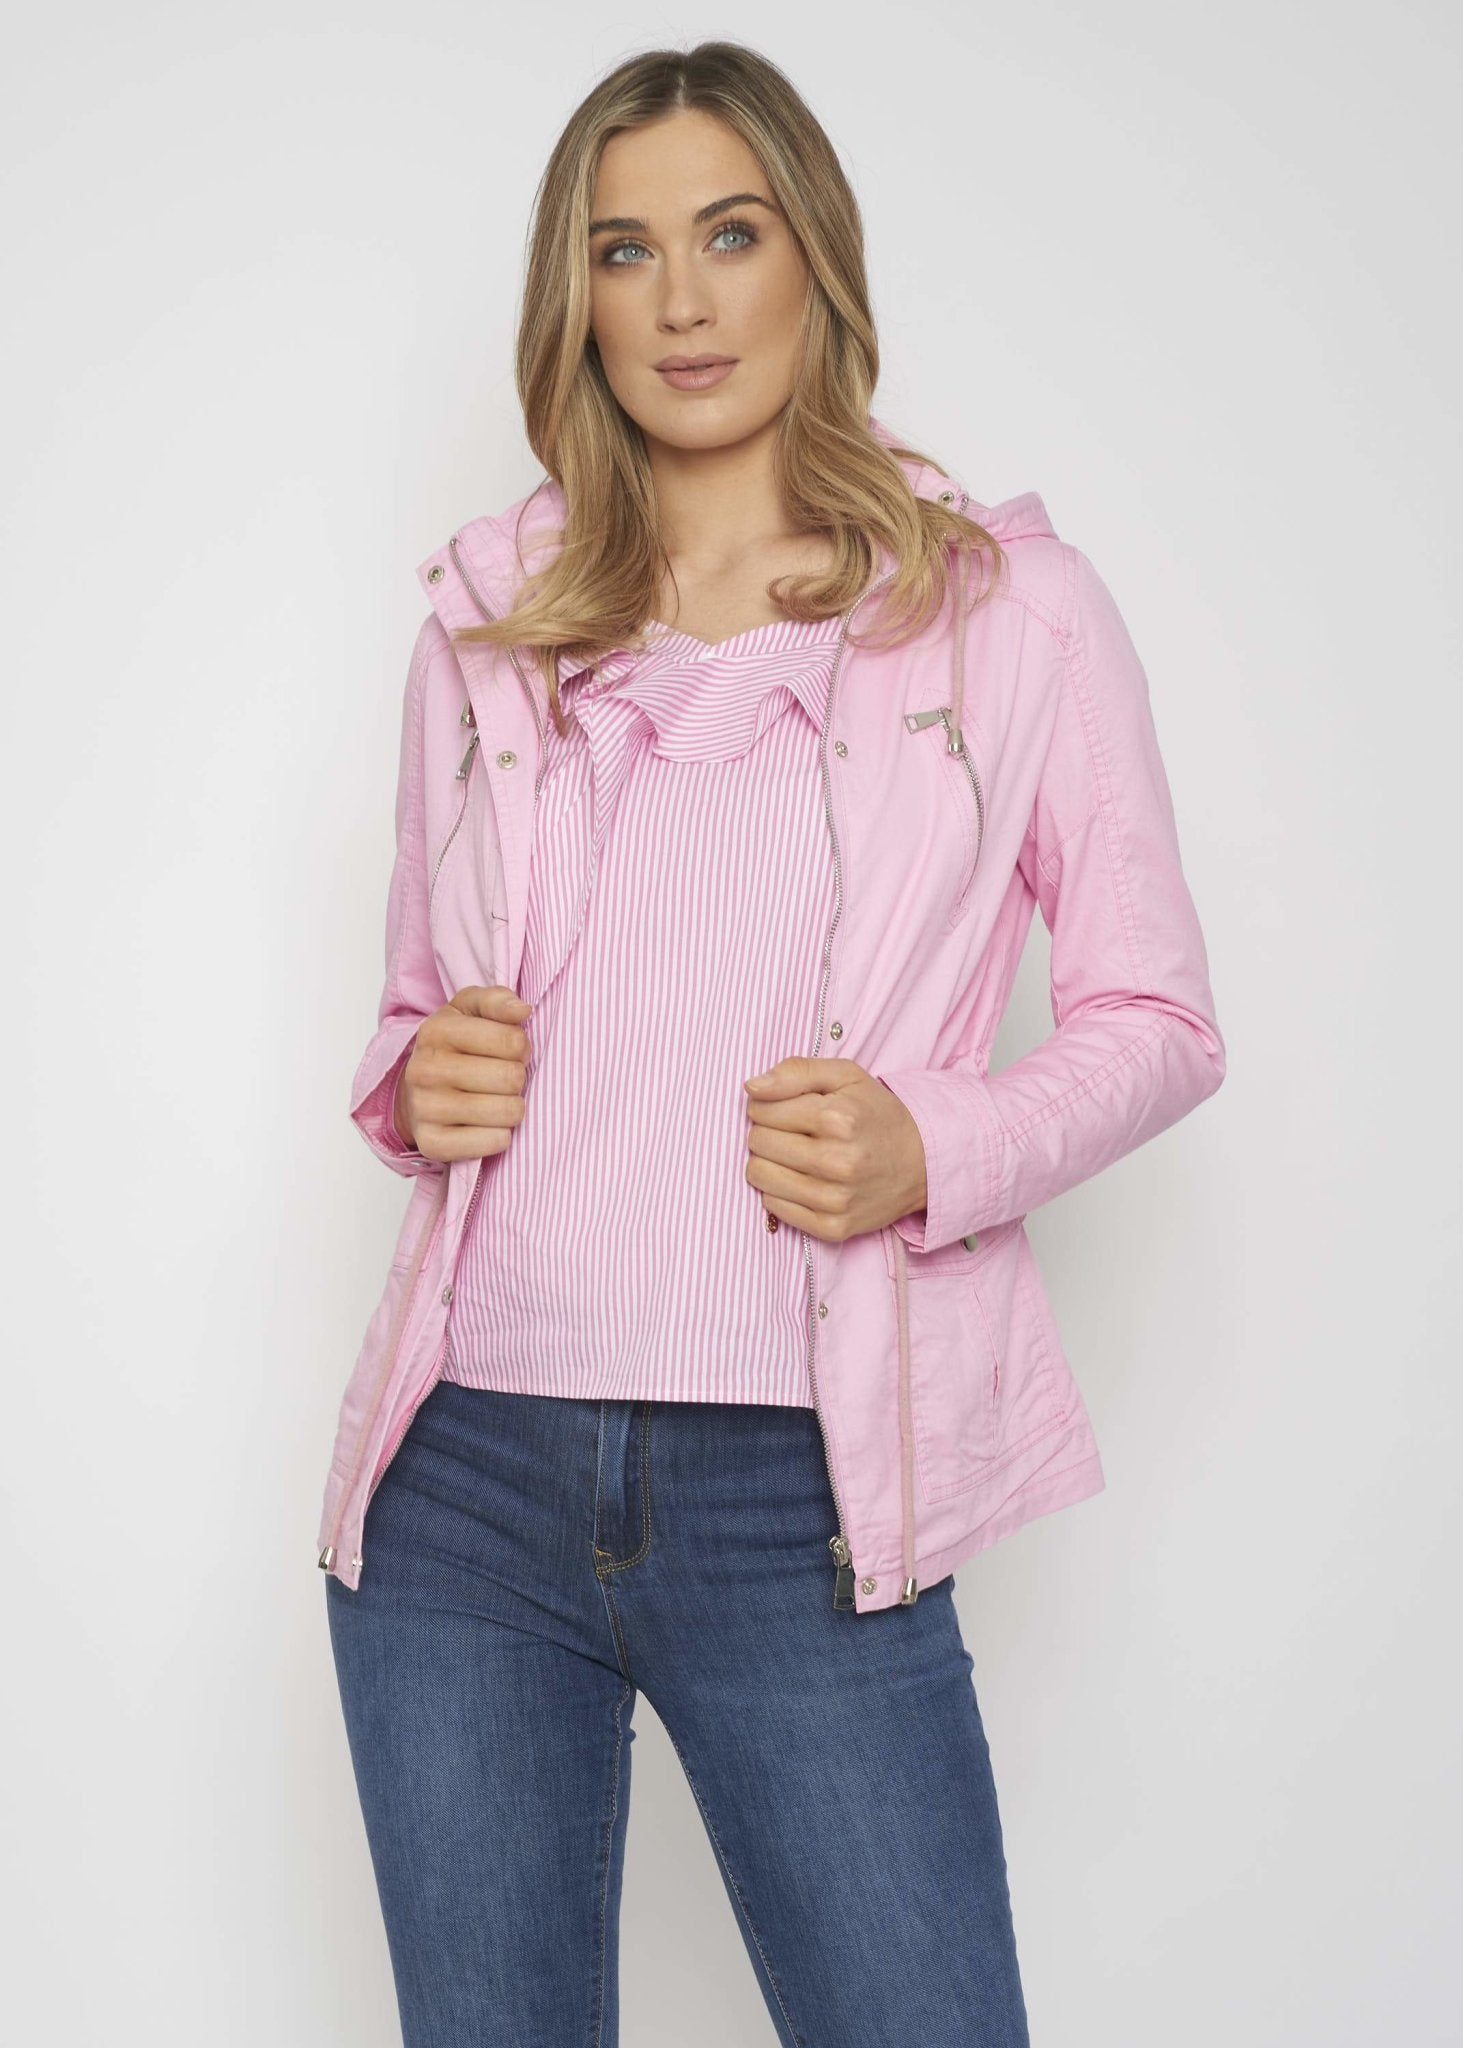 Casey Drawstring Waist Jacket In Pink - The Walk in Wardrobe